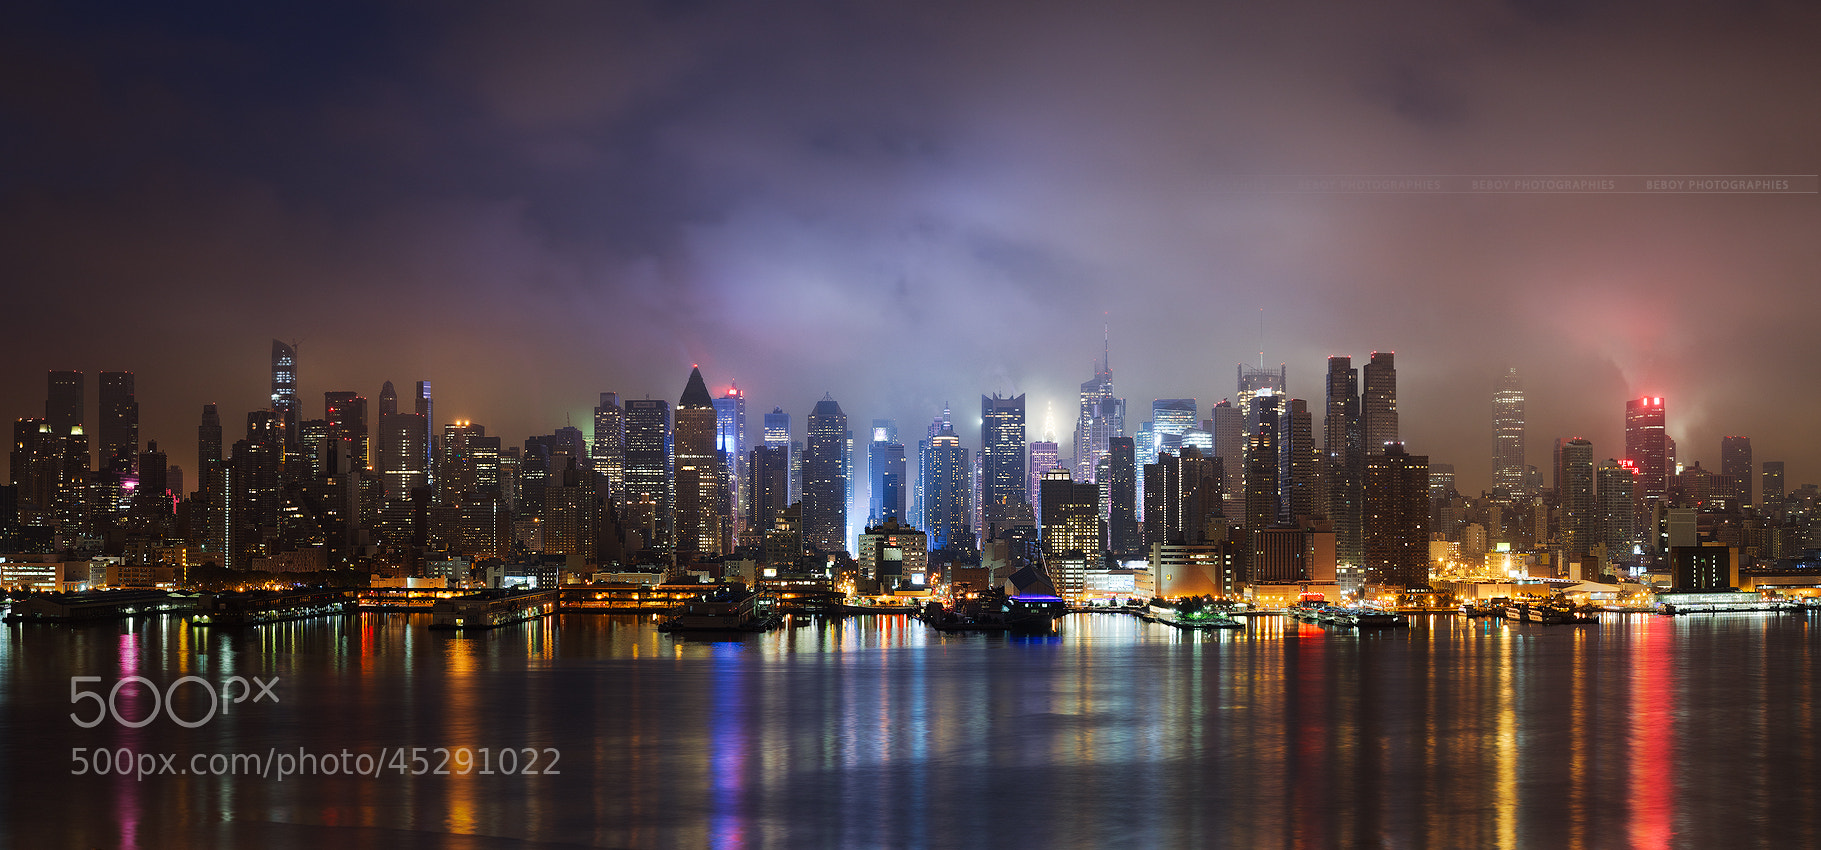 Photograph Light Symphony, New-York City by Beboy Photographies on 500px